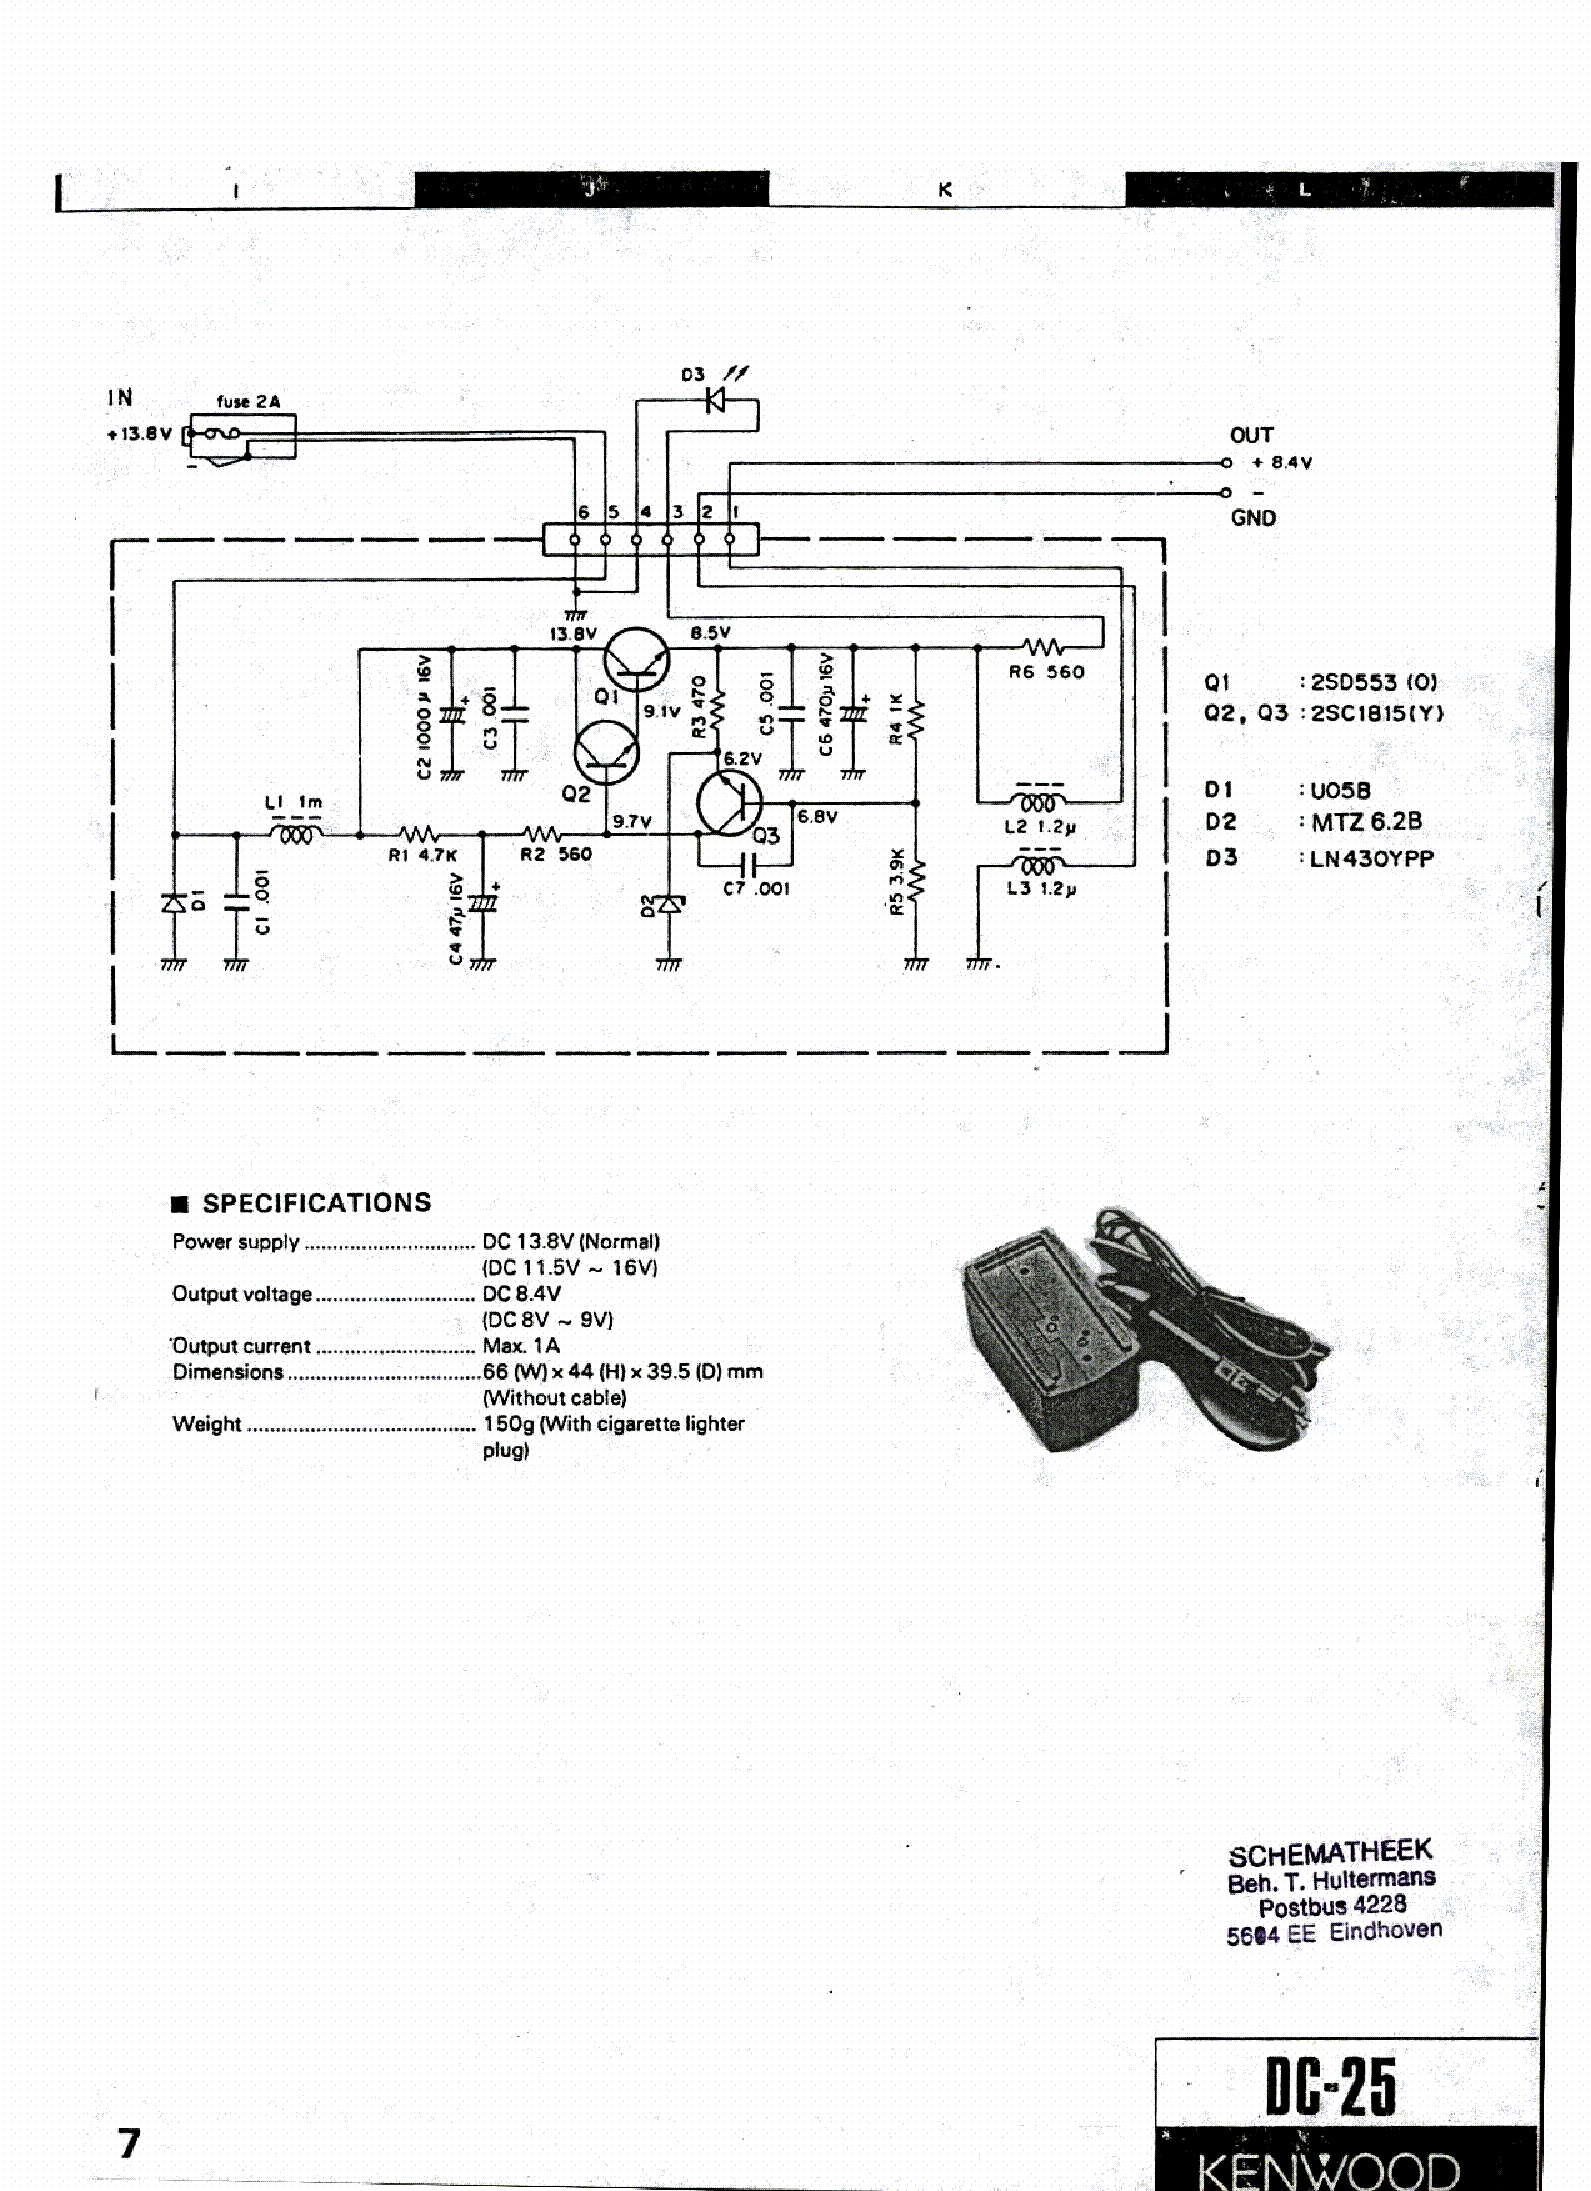 Kenwood Ps 430 Dc Power Supply Service Manual Download